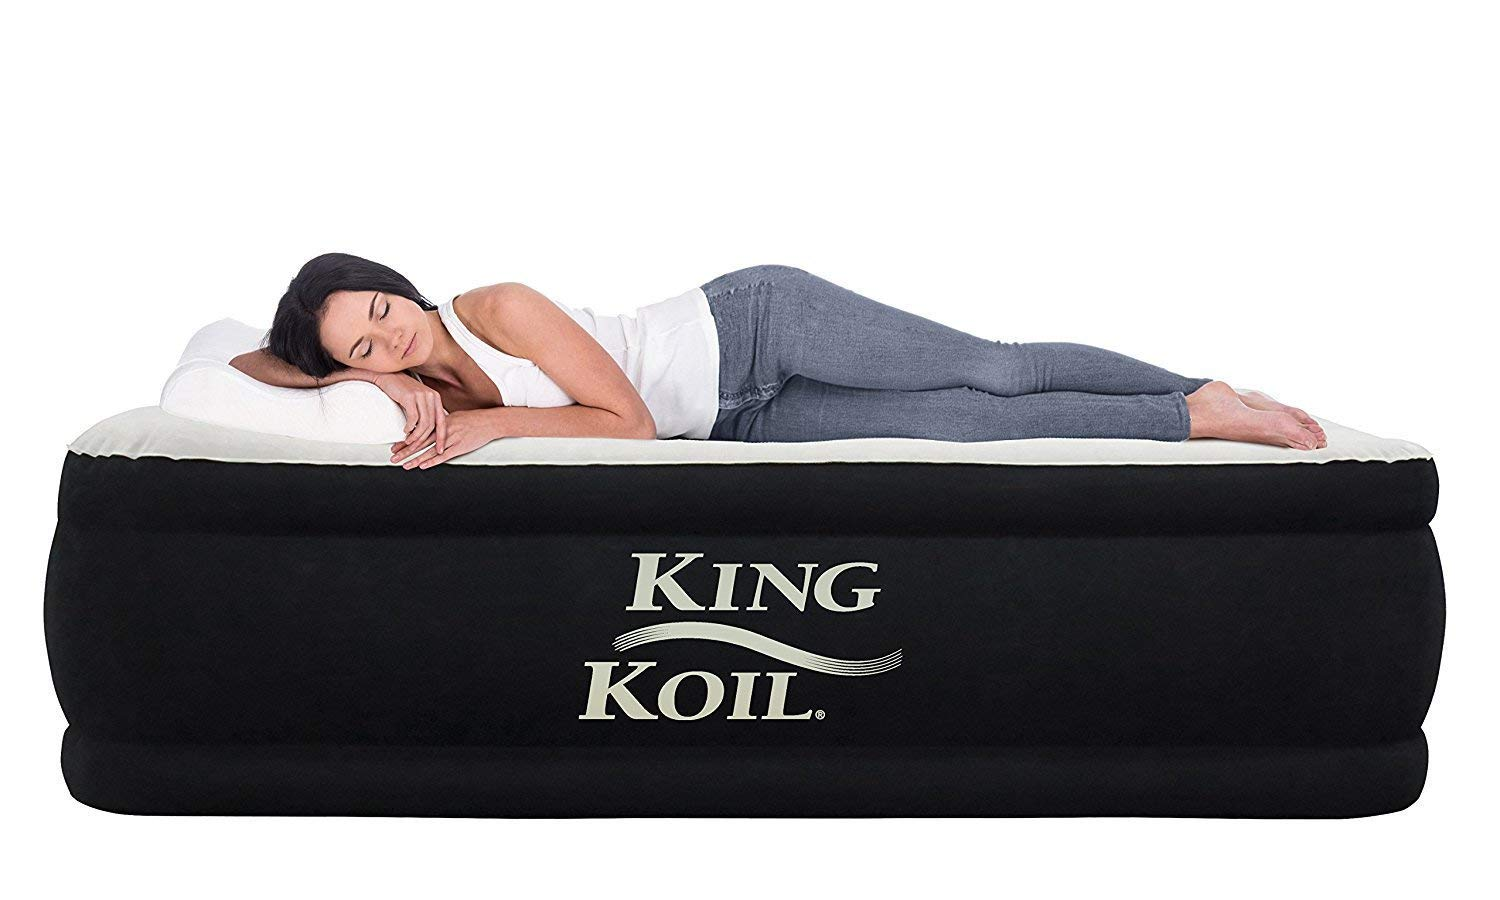 King Koil California King Luxury Raised Air Mattress with Built-in 120V AC High Capacity Internal Pump Comfort Quilt Top California King Airbed for Home Camping Travel 1-Year Manufacturer Guarantee by King Koil